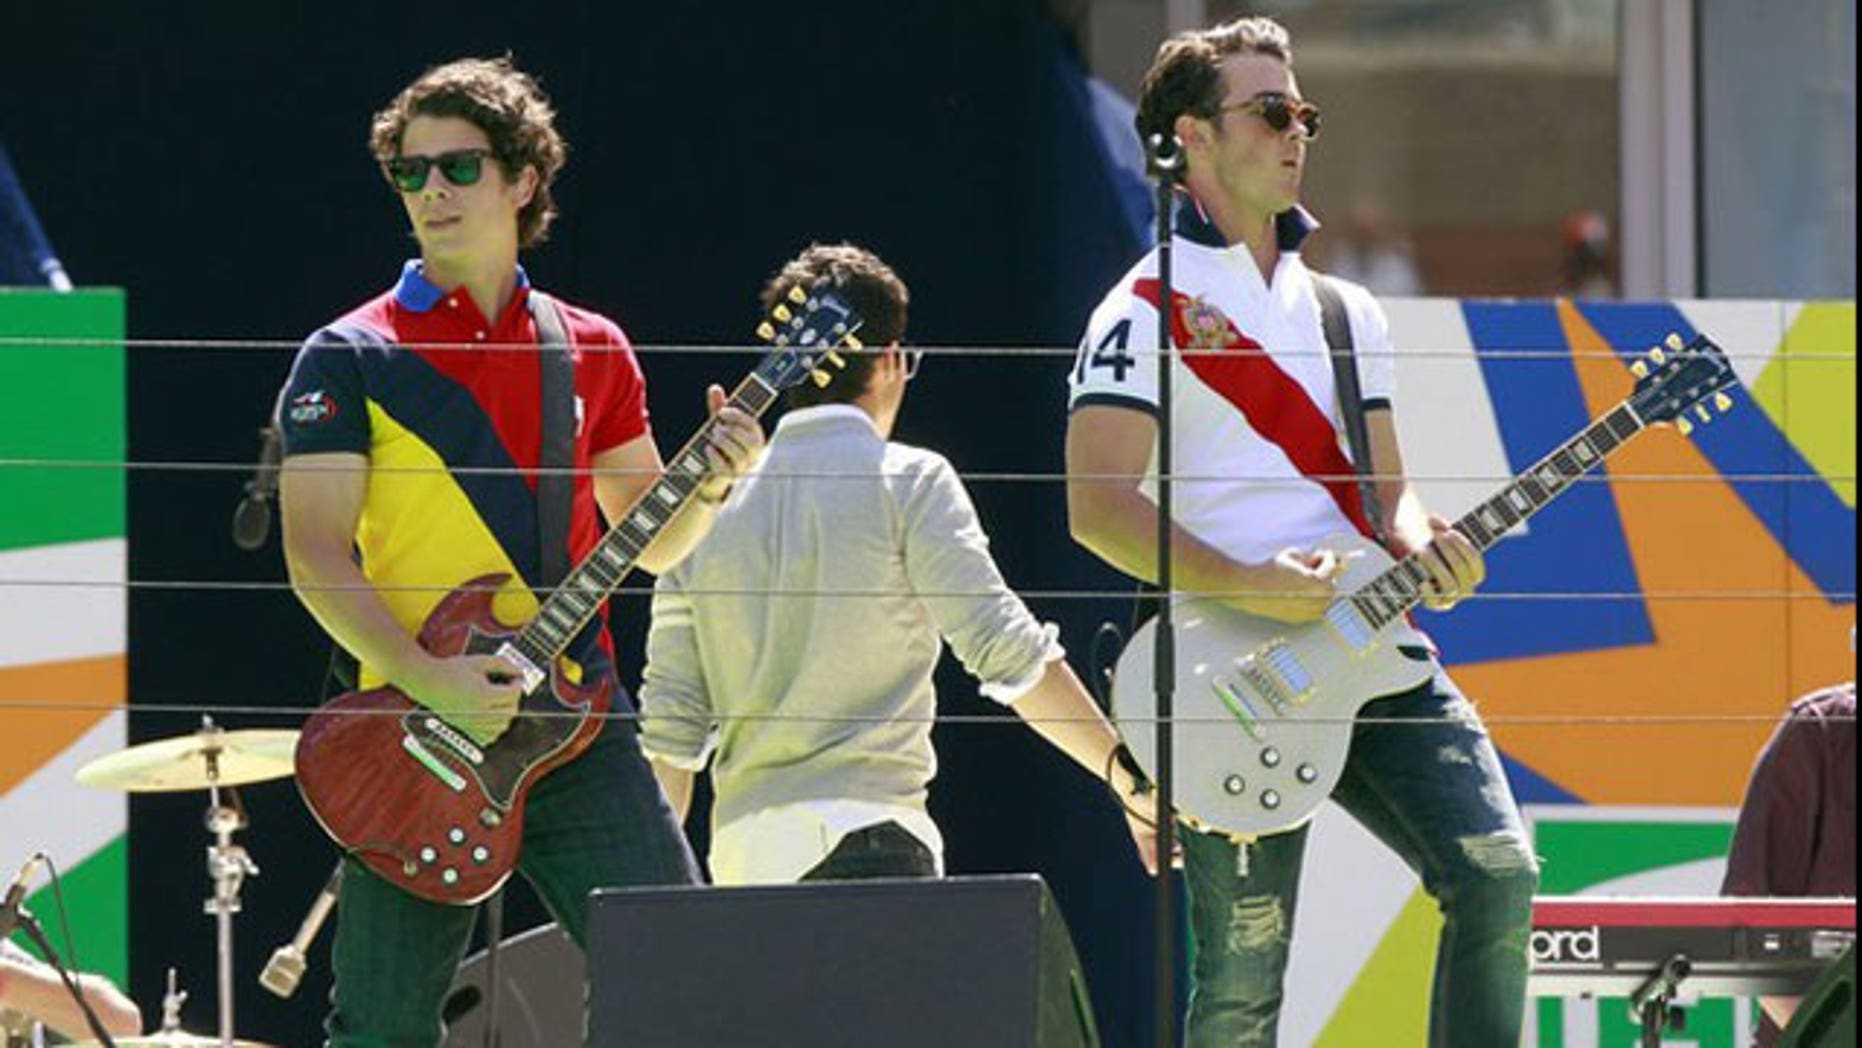 The Jonas Brothers perform. Their manager is launching a web search for the next big star.